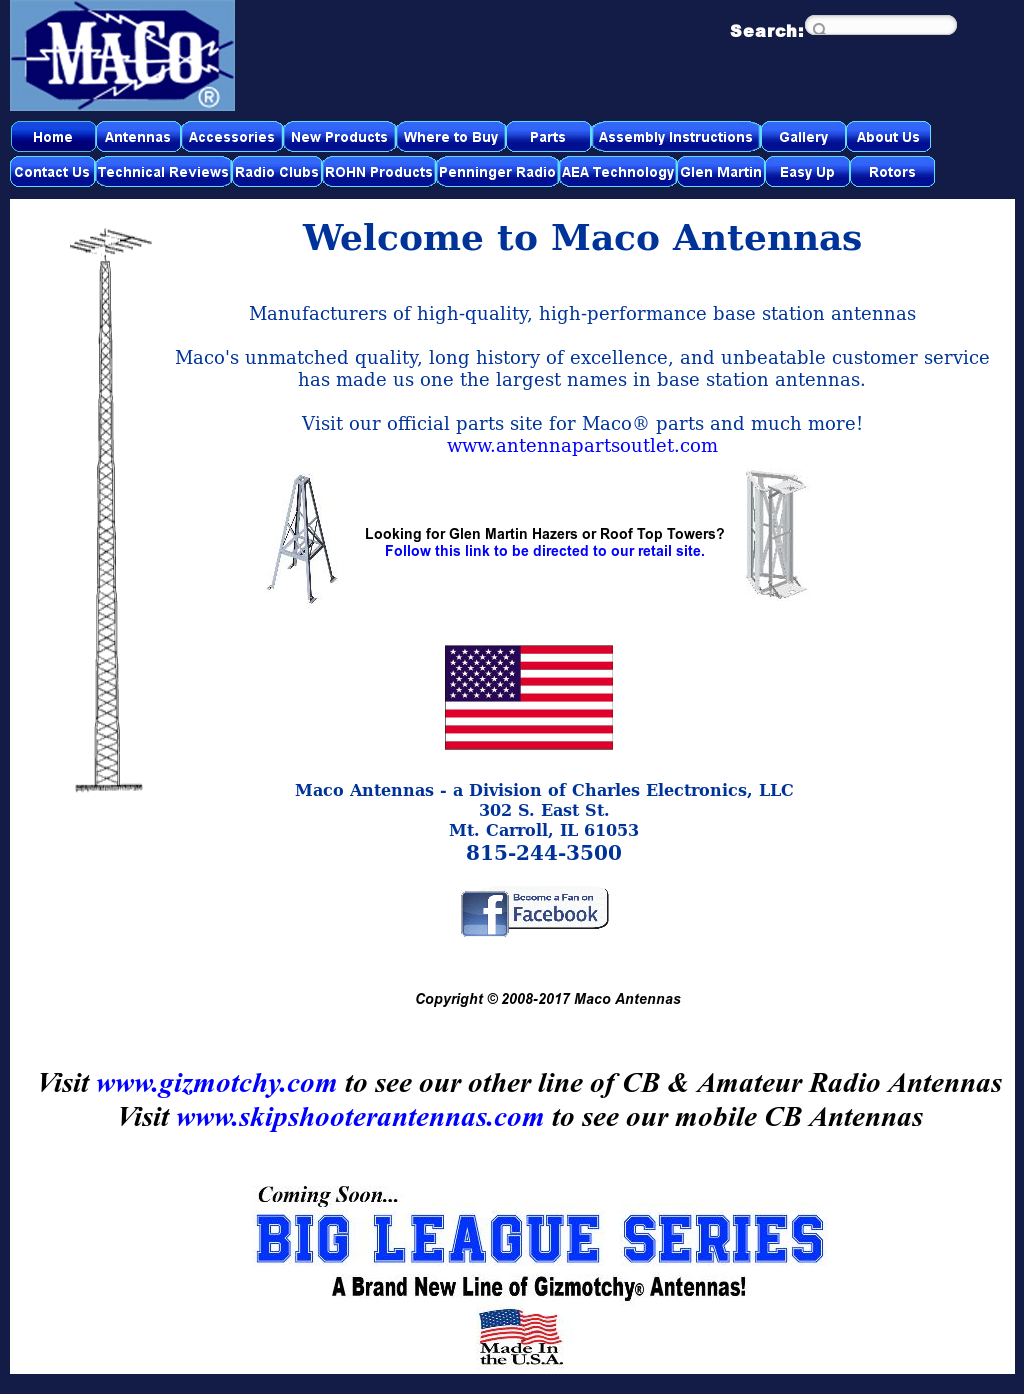 Maco Antennas Competitors, Revenue and Employees - Owler